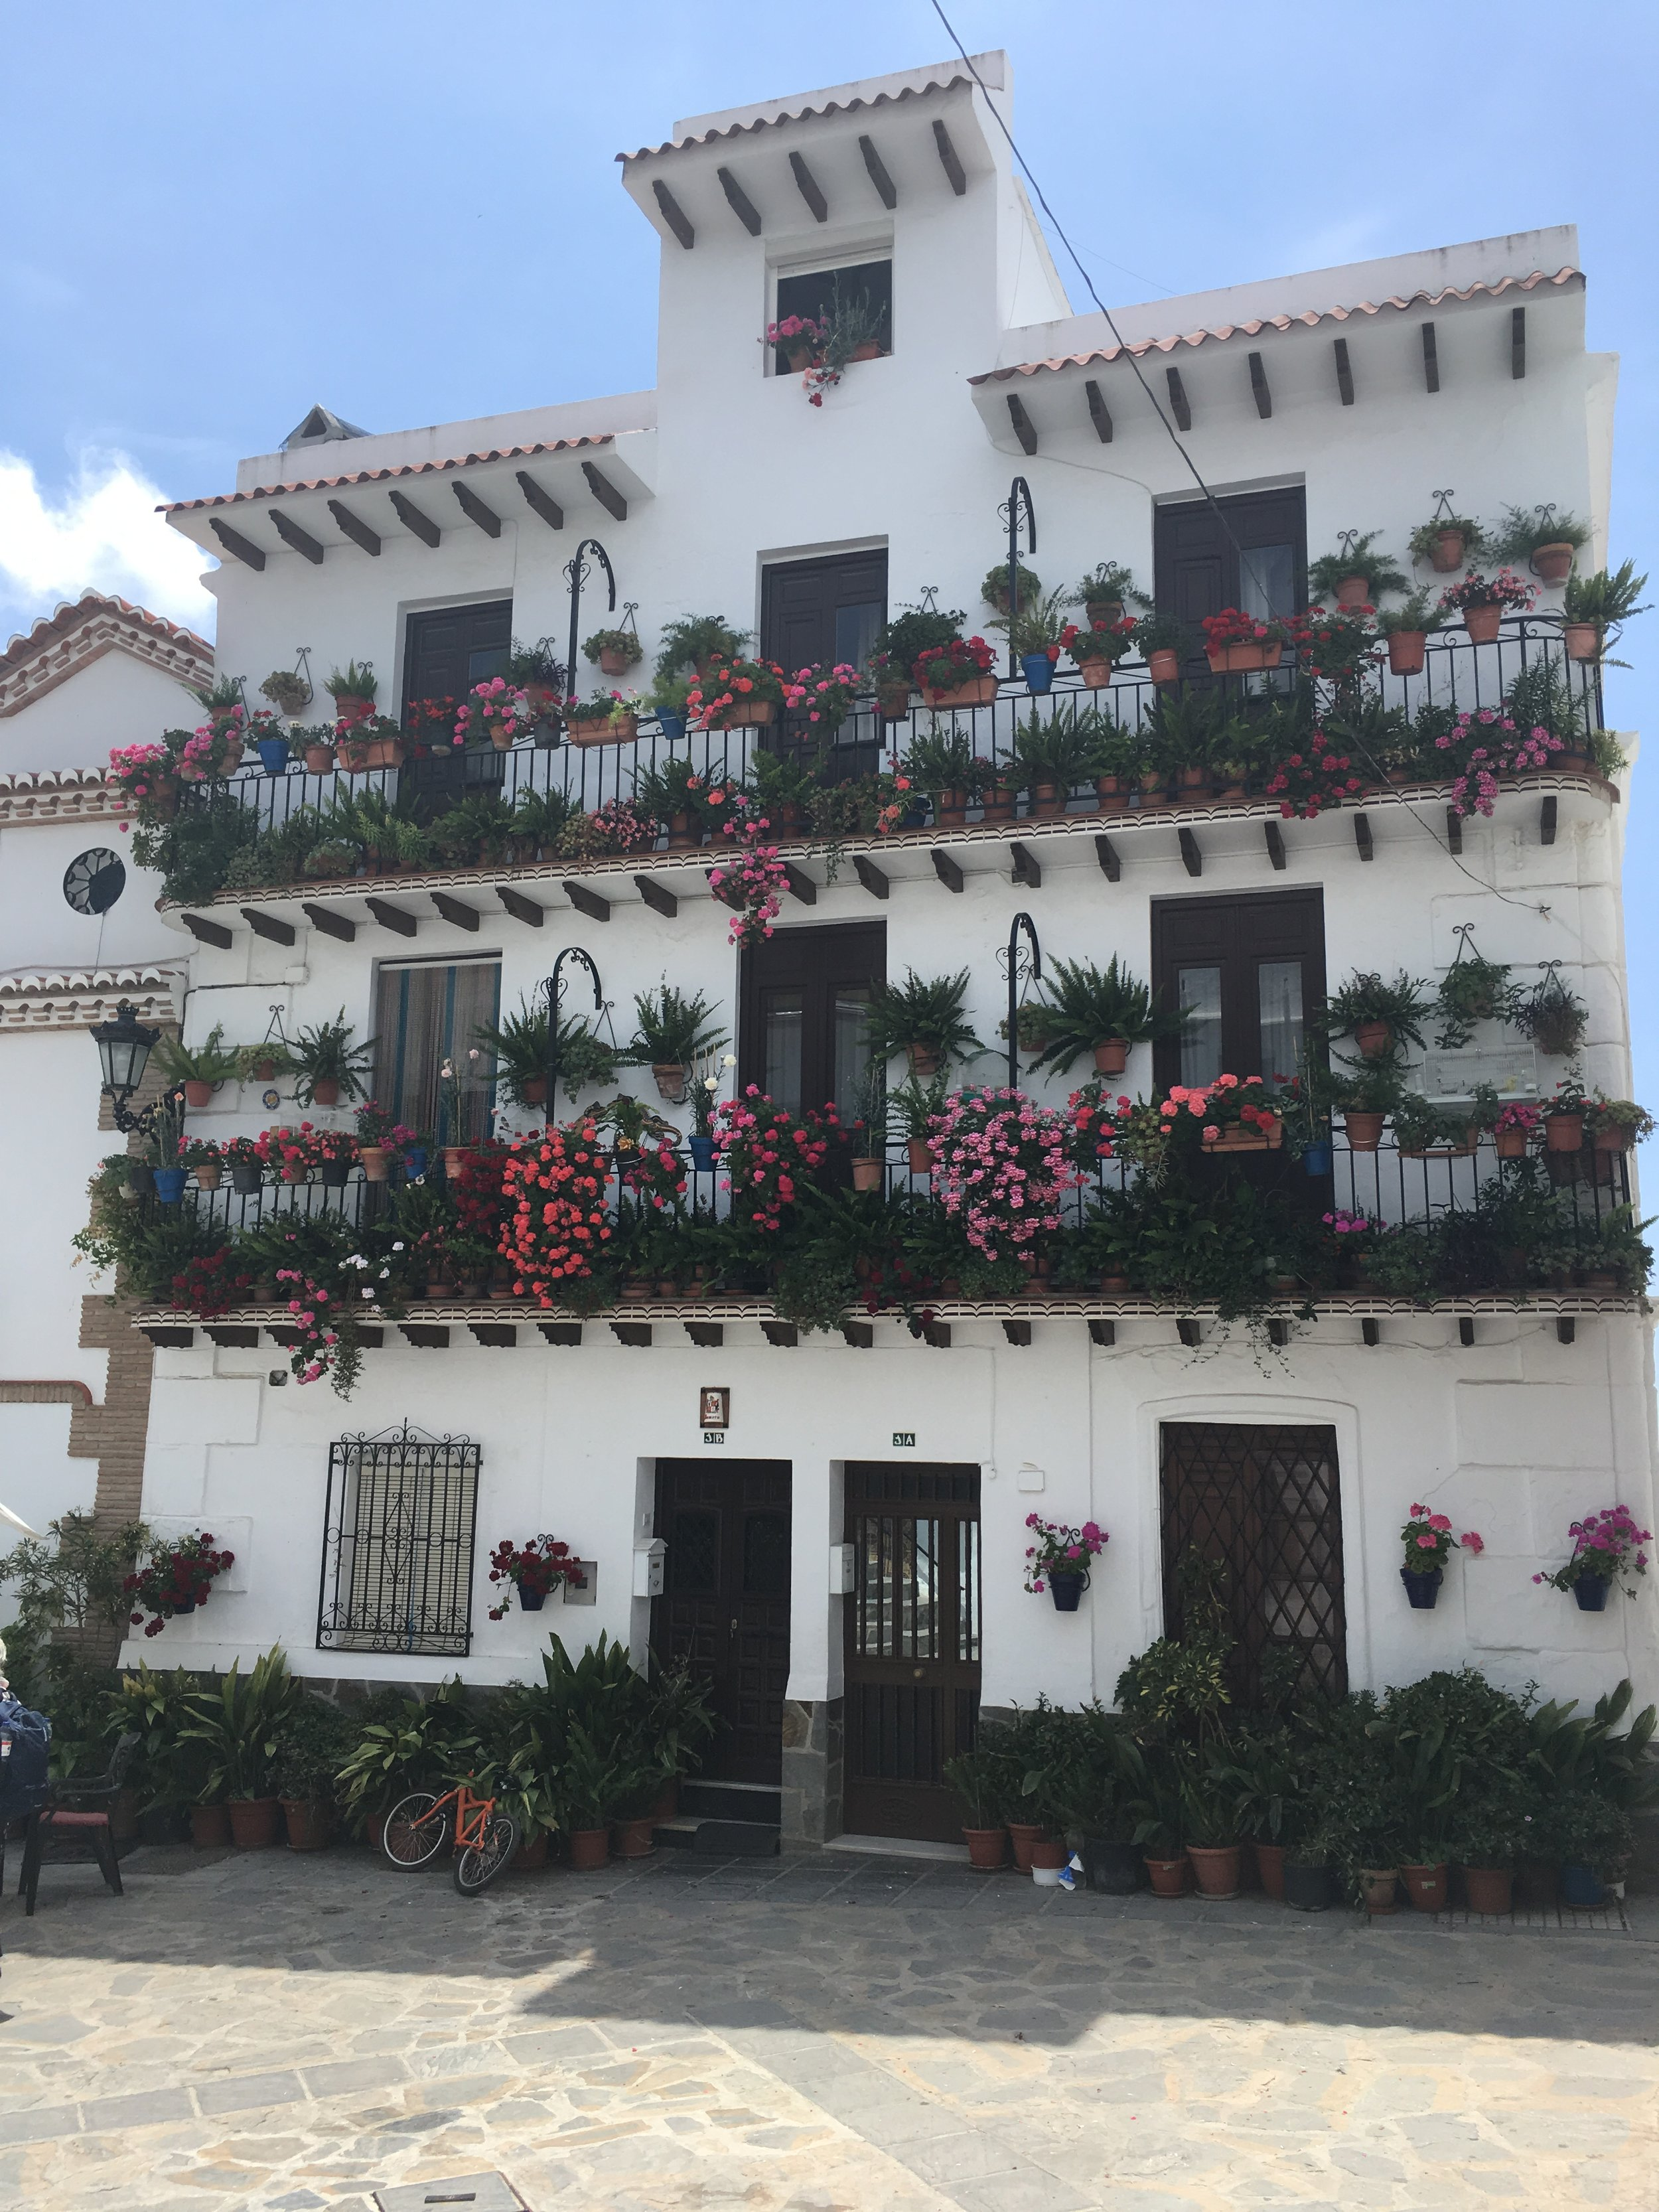 The town of Canillas